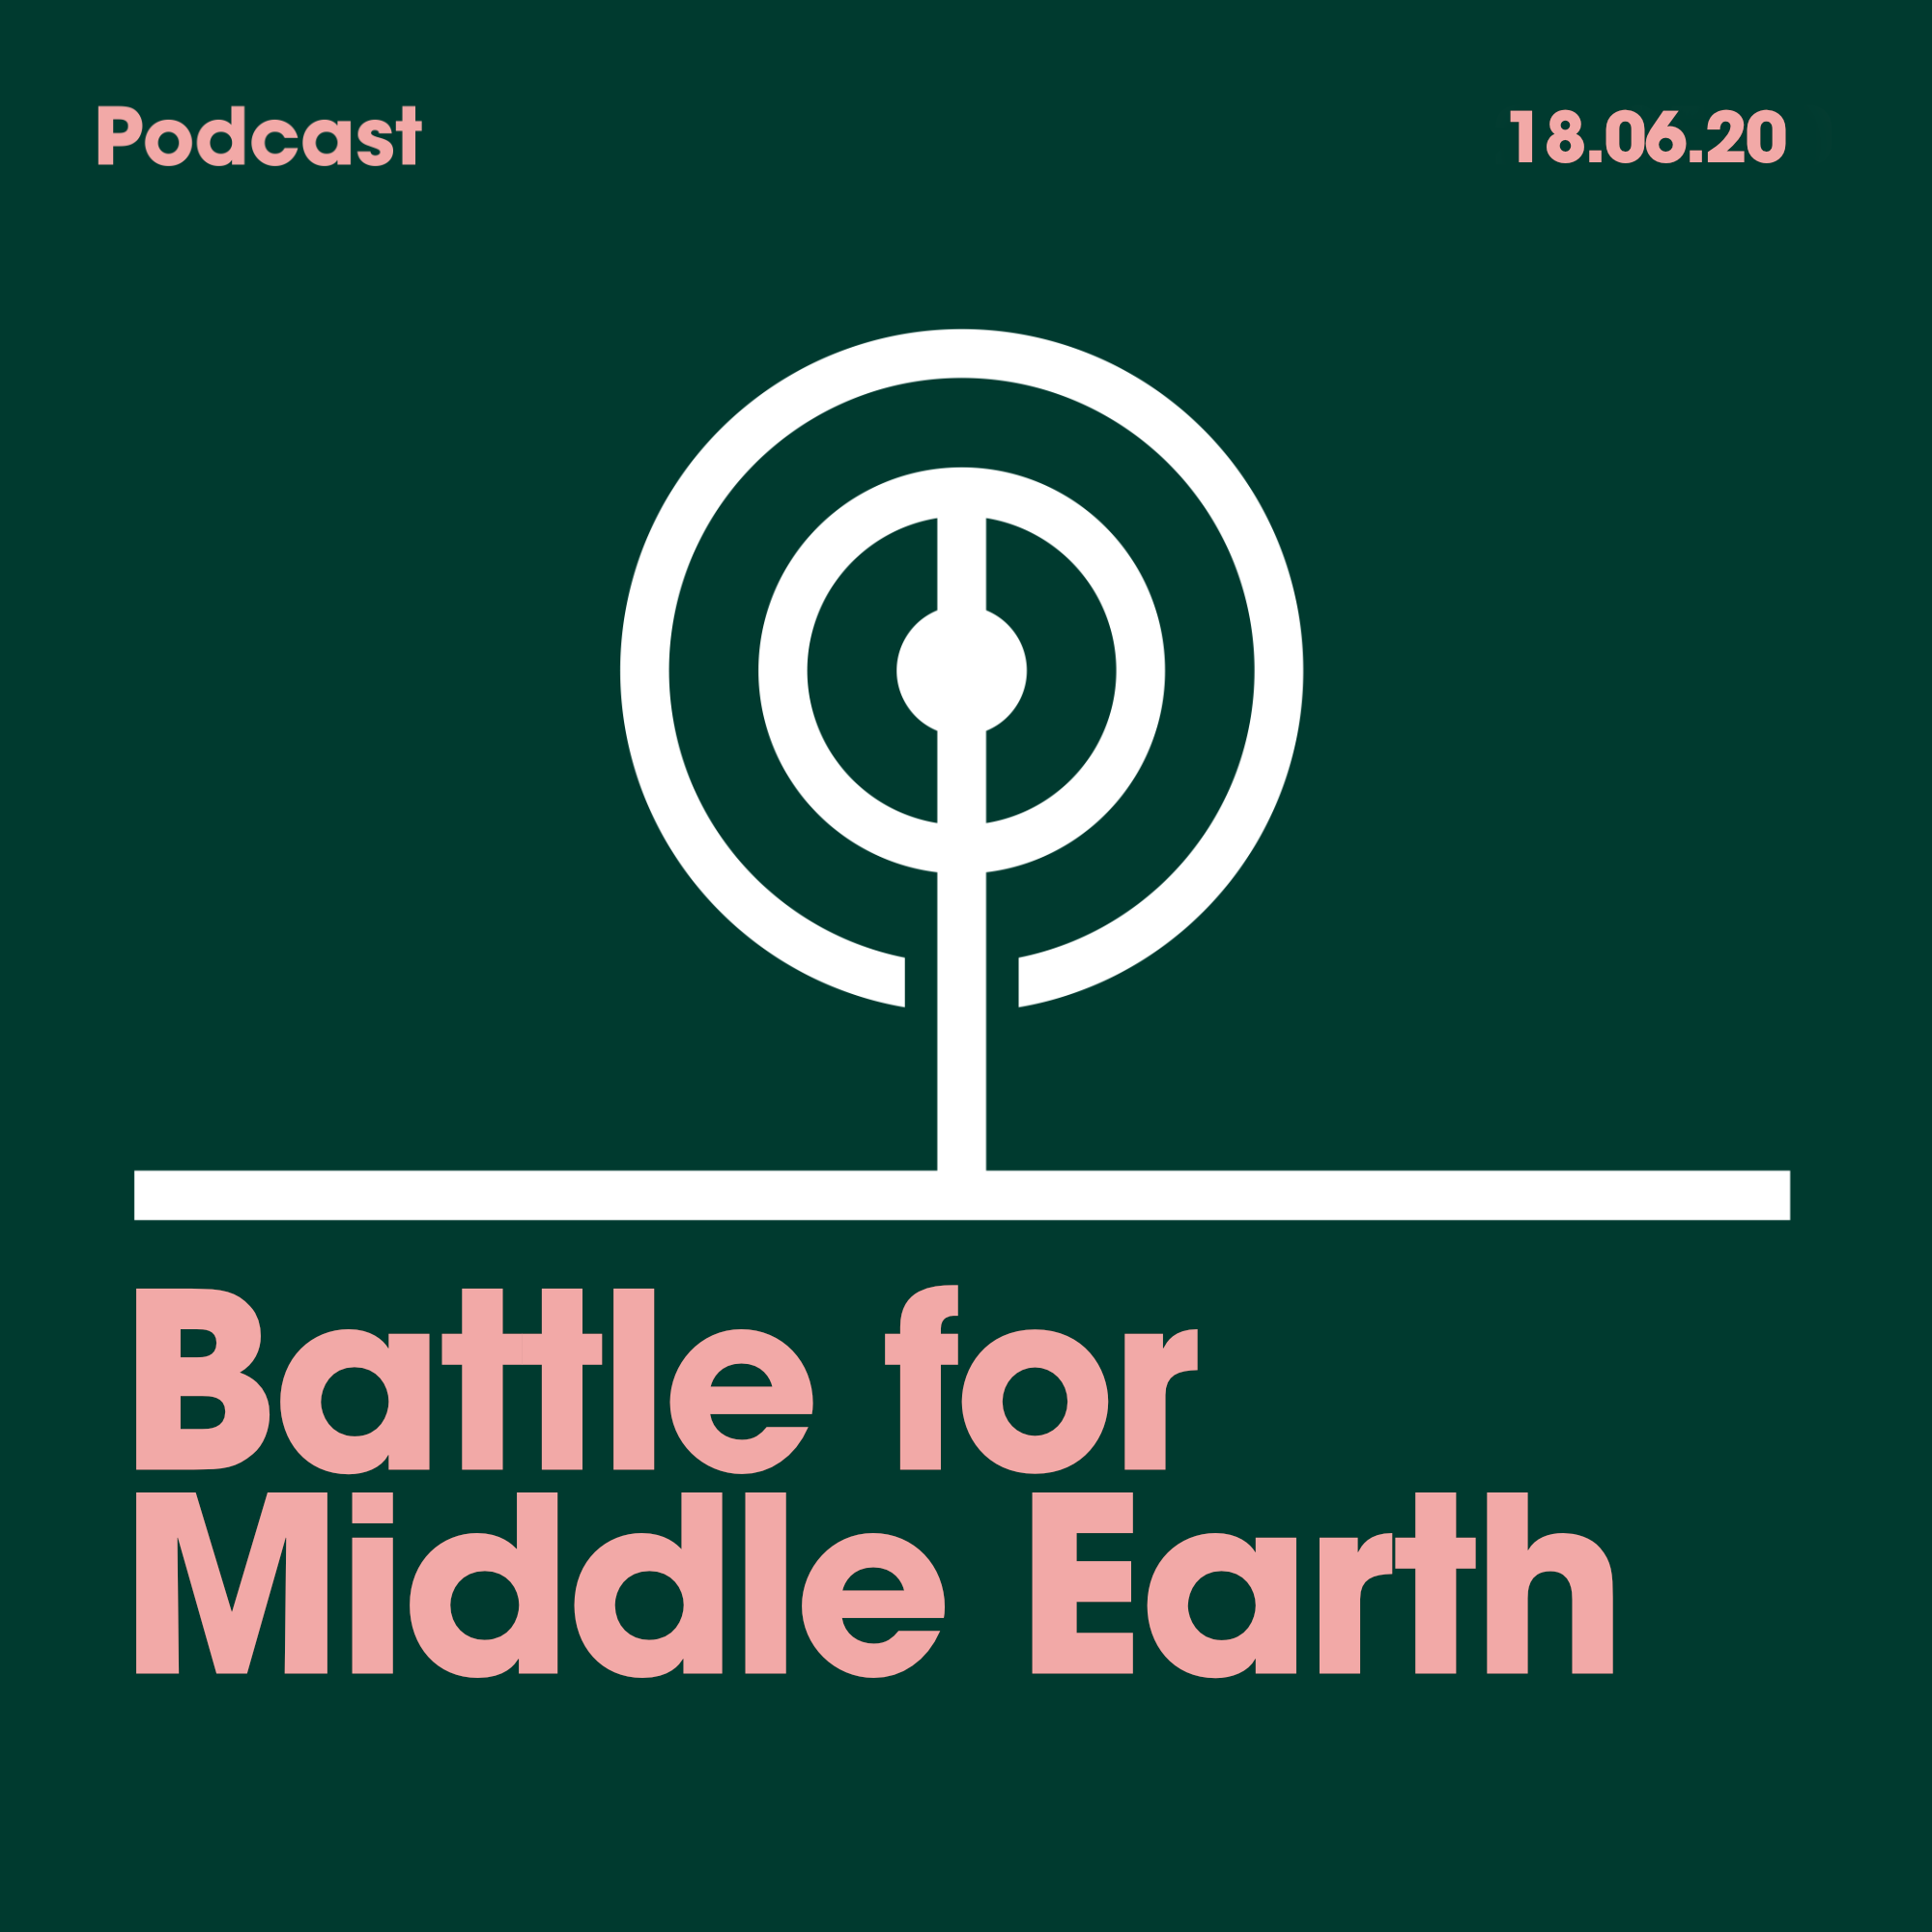 18.06.20. Battle for Middle Earth